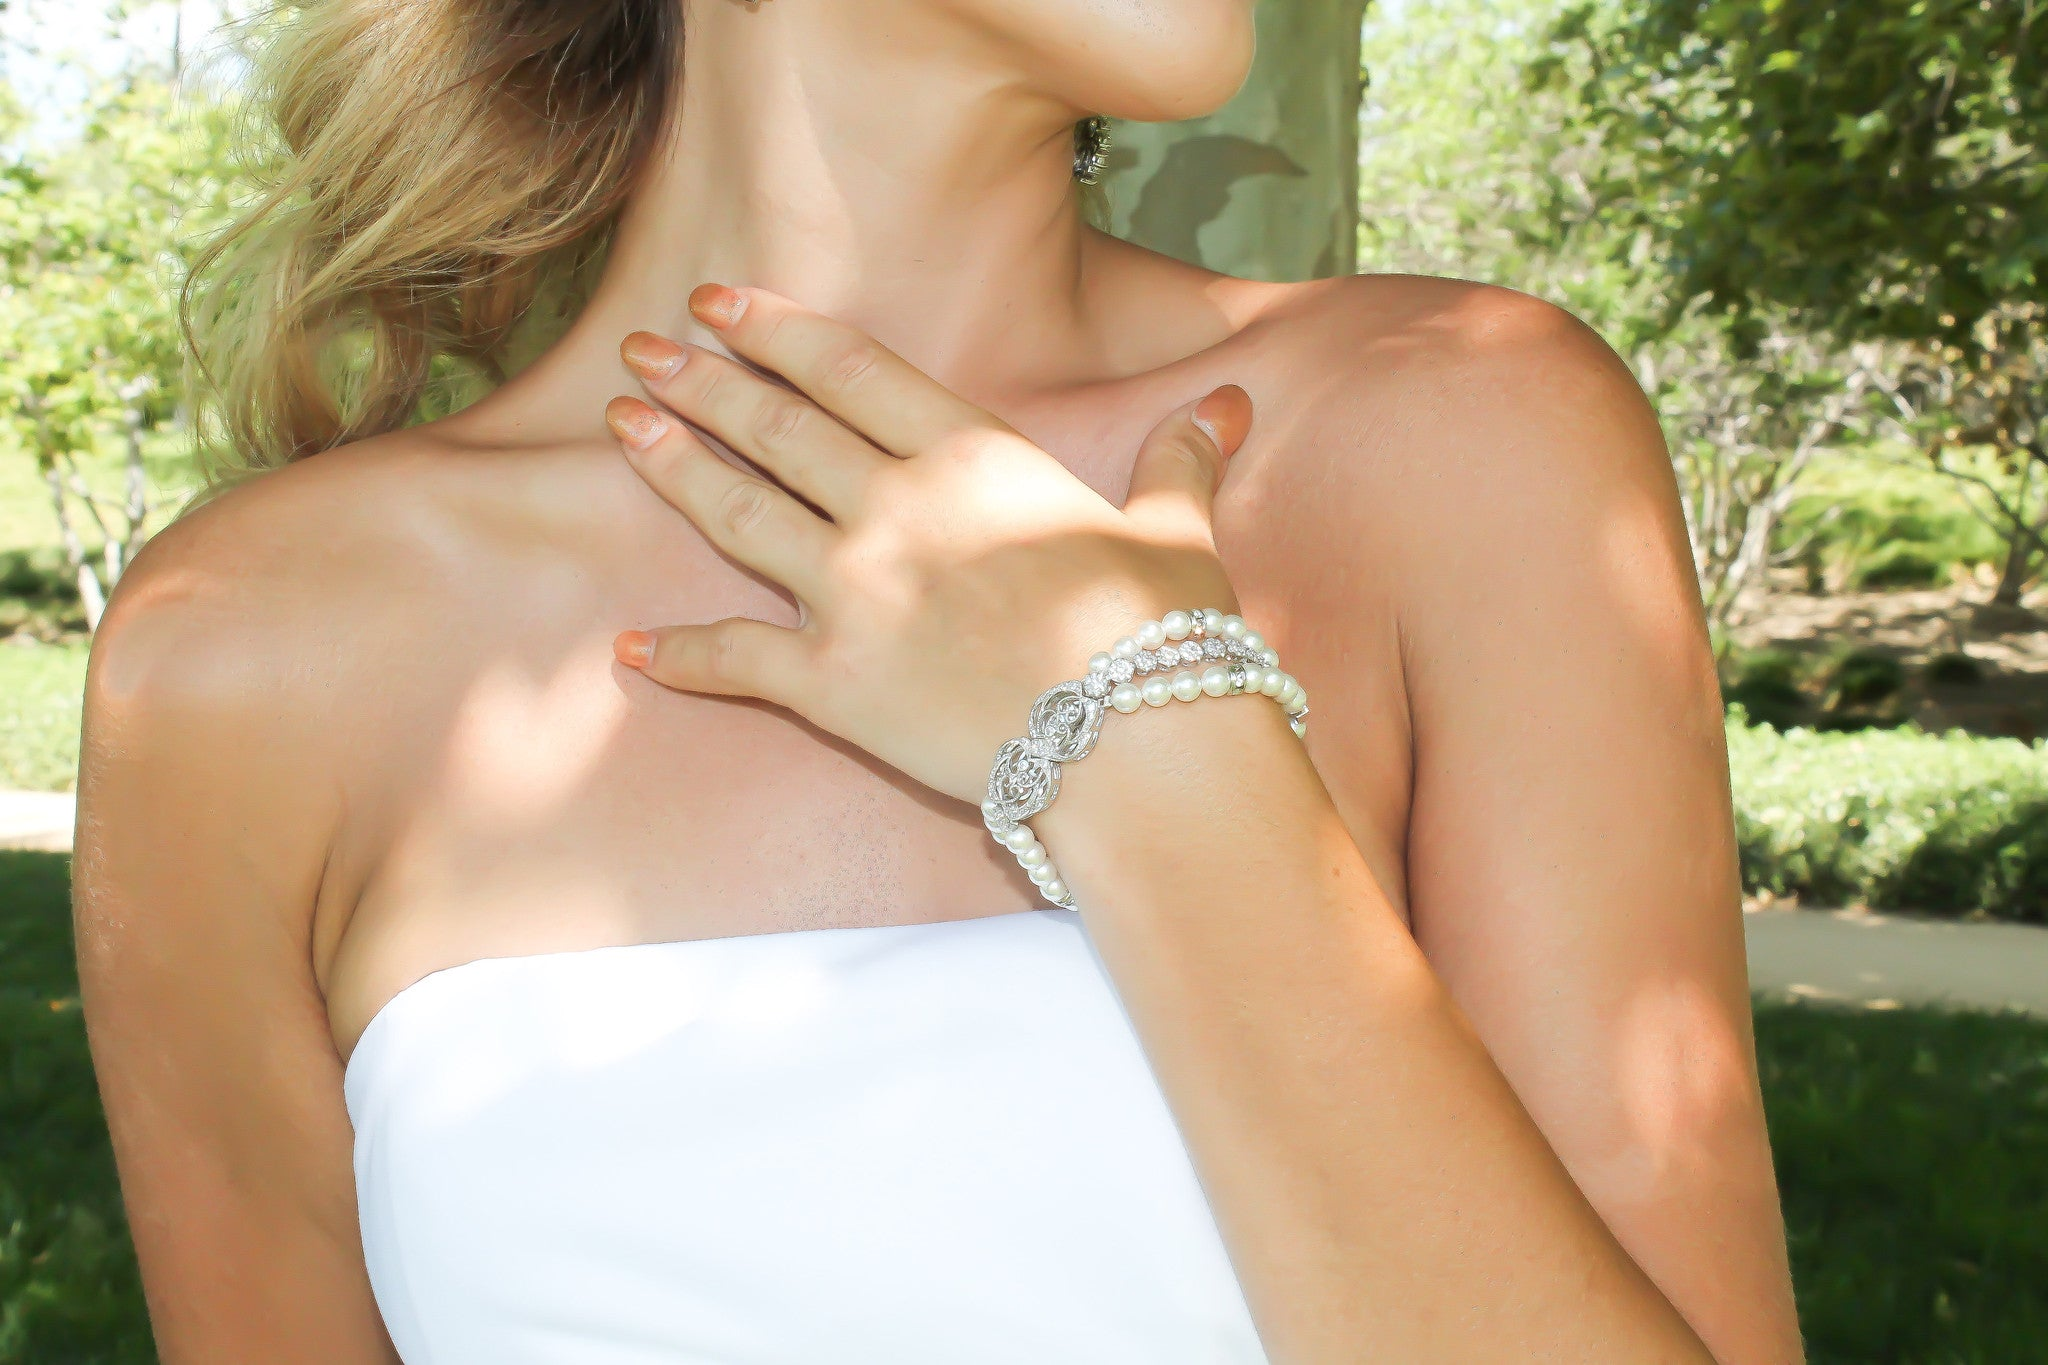 Bridal Bracelet Handcrafted with Swarovski Pearls and Cubic Zirconia - Bride Glamor